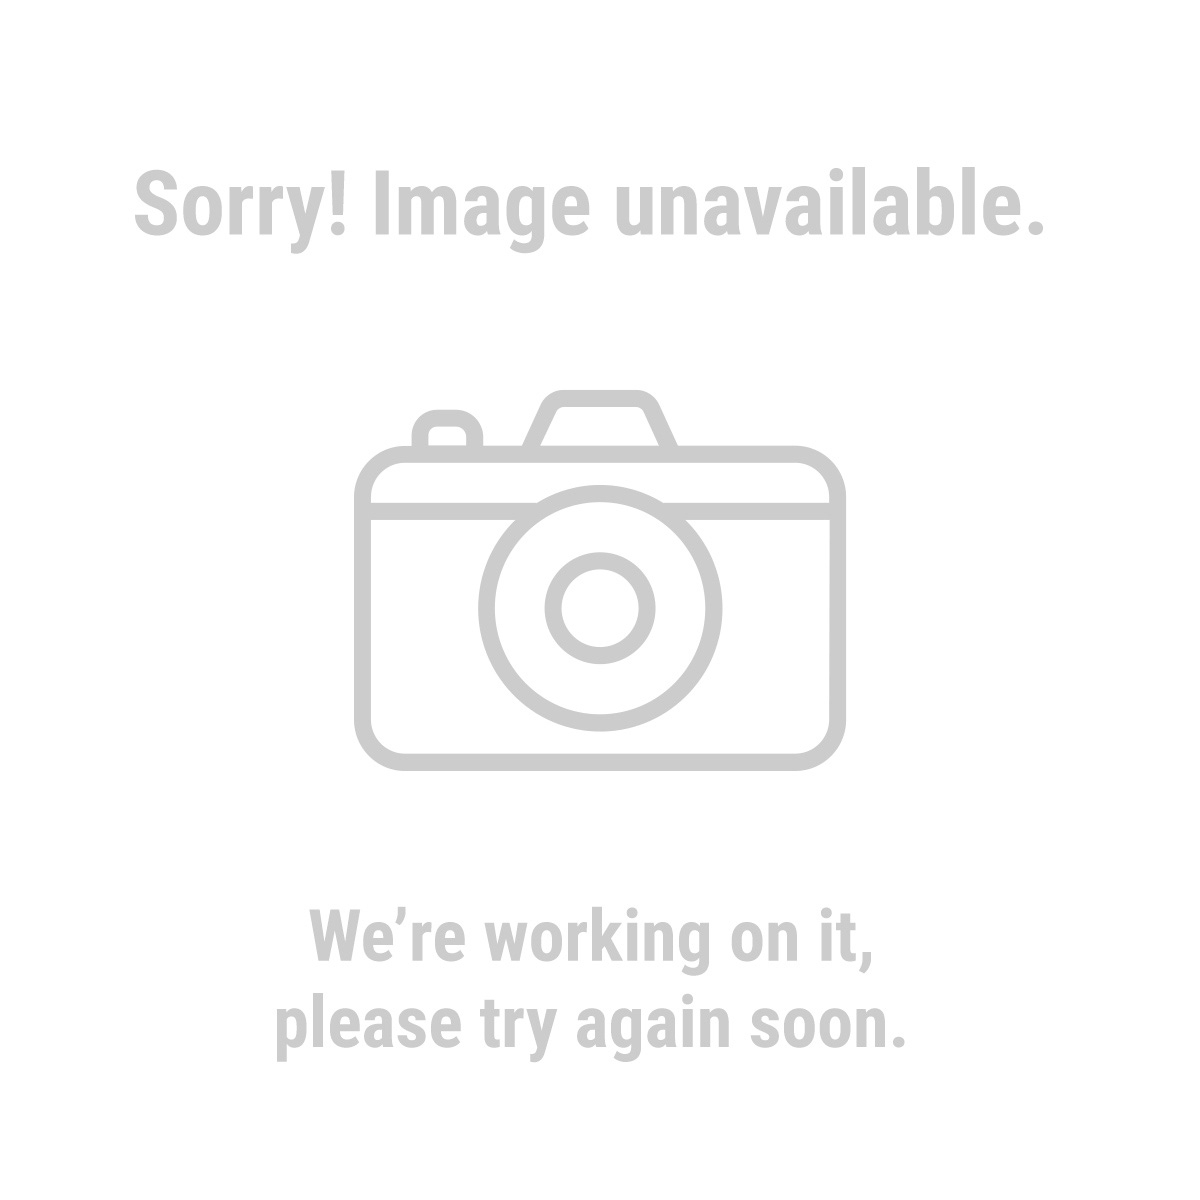 2 piece yellow rain suit xx large for Rain suits for fishing